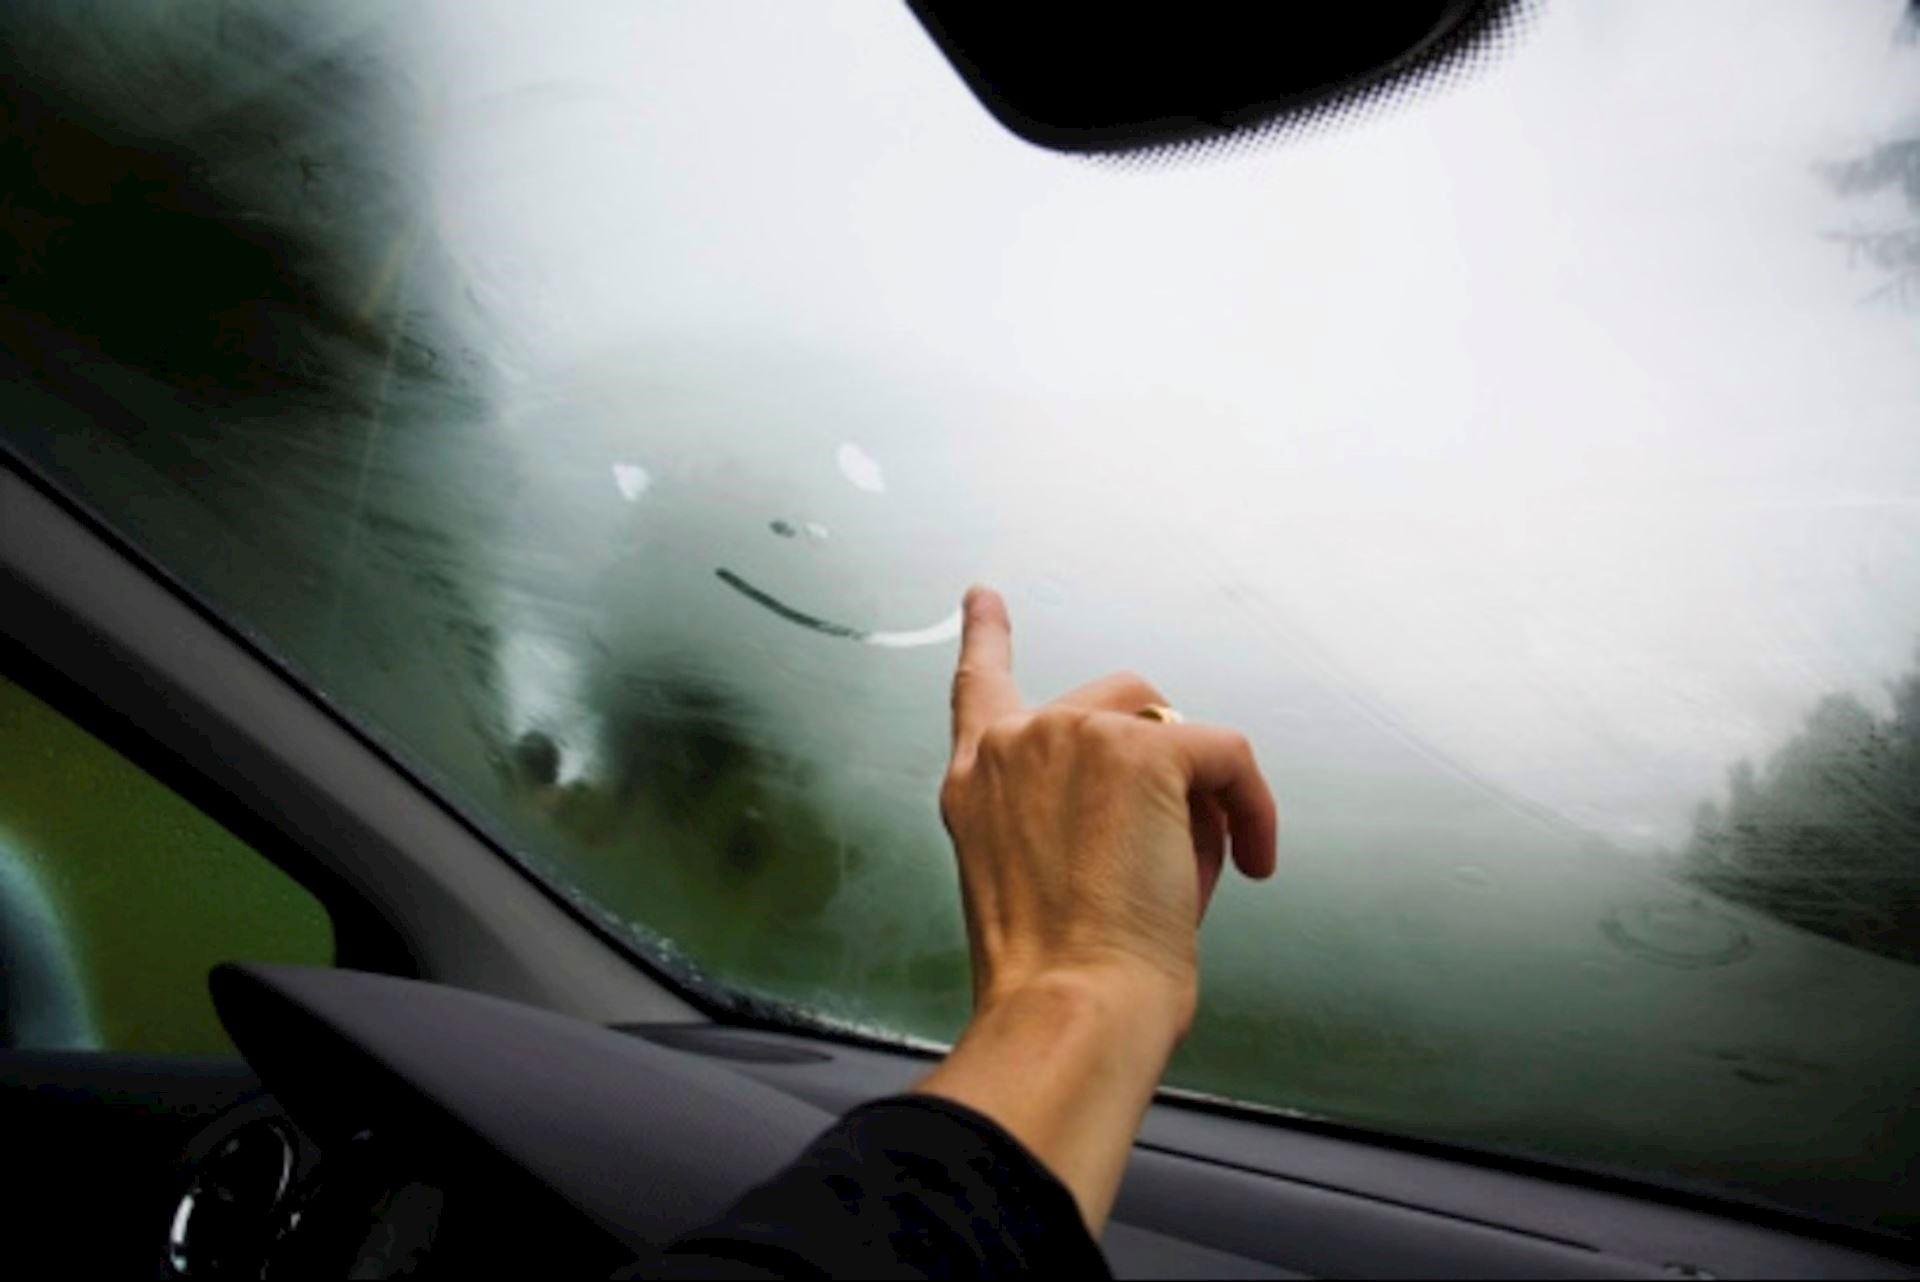 What Common Household Item Helps to Clear Foggy Windows?